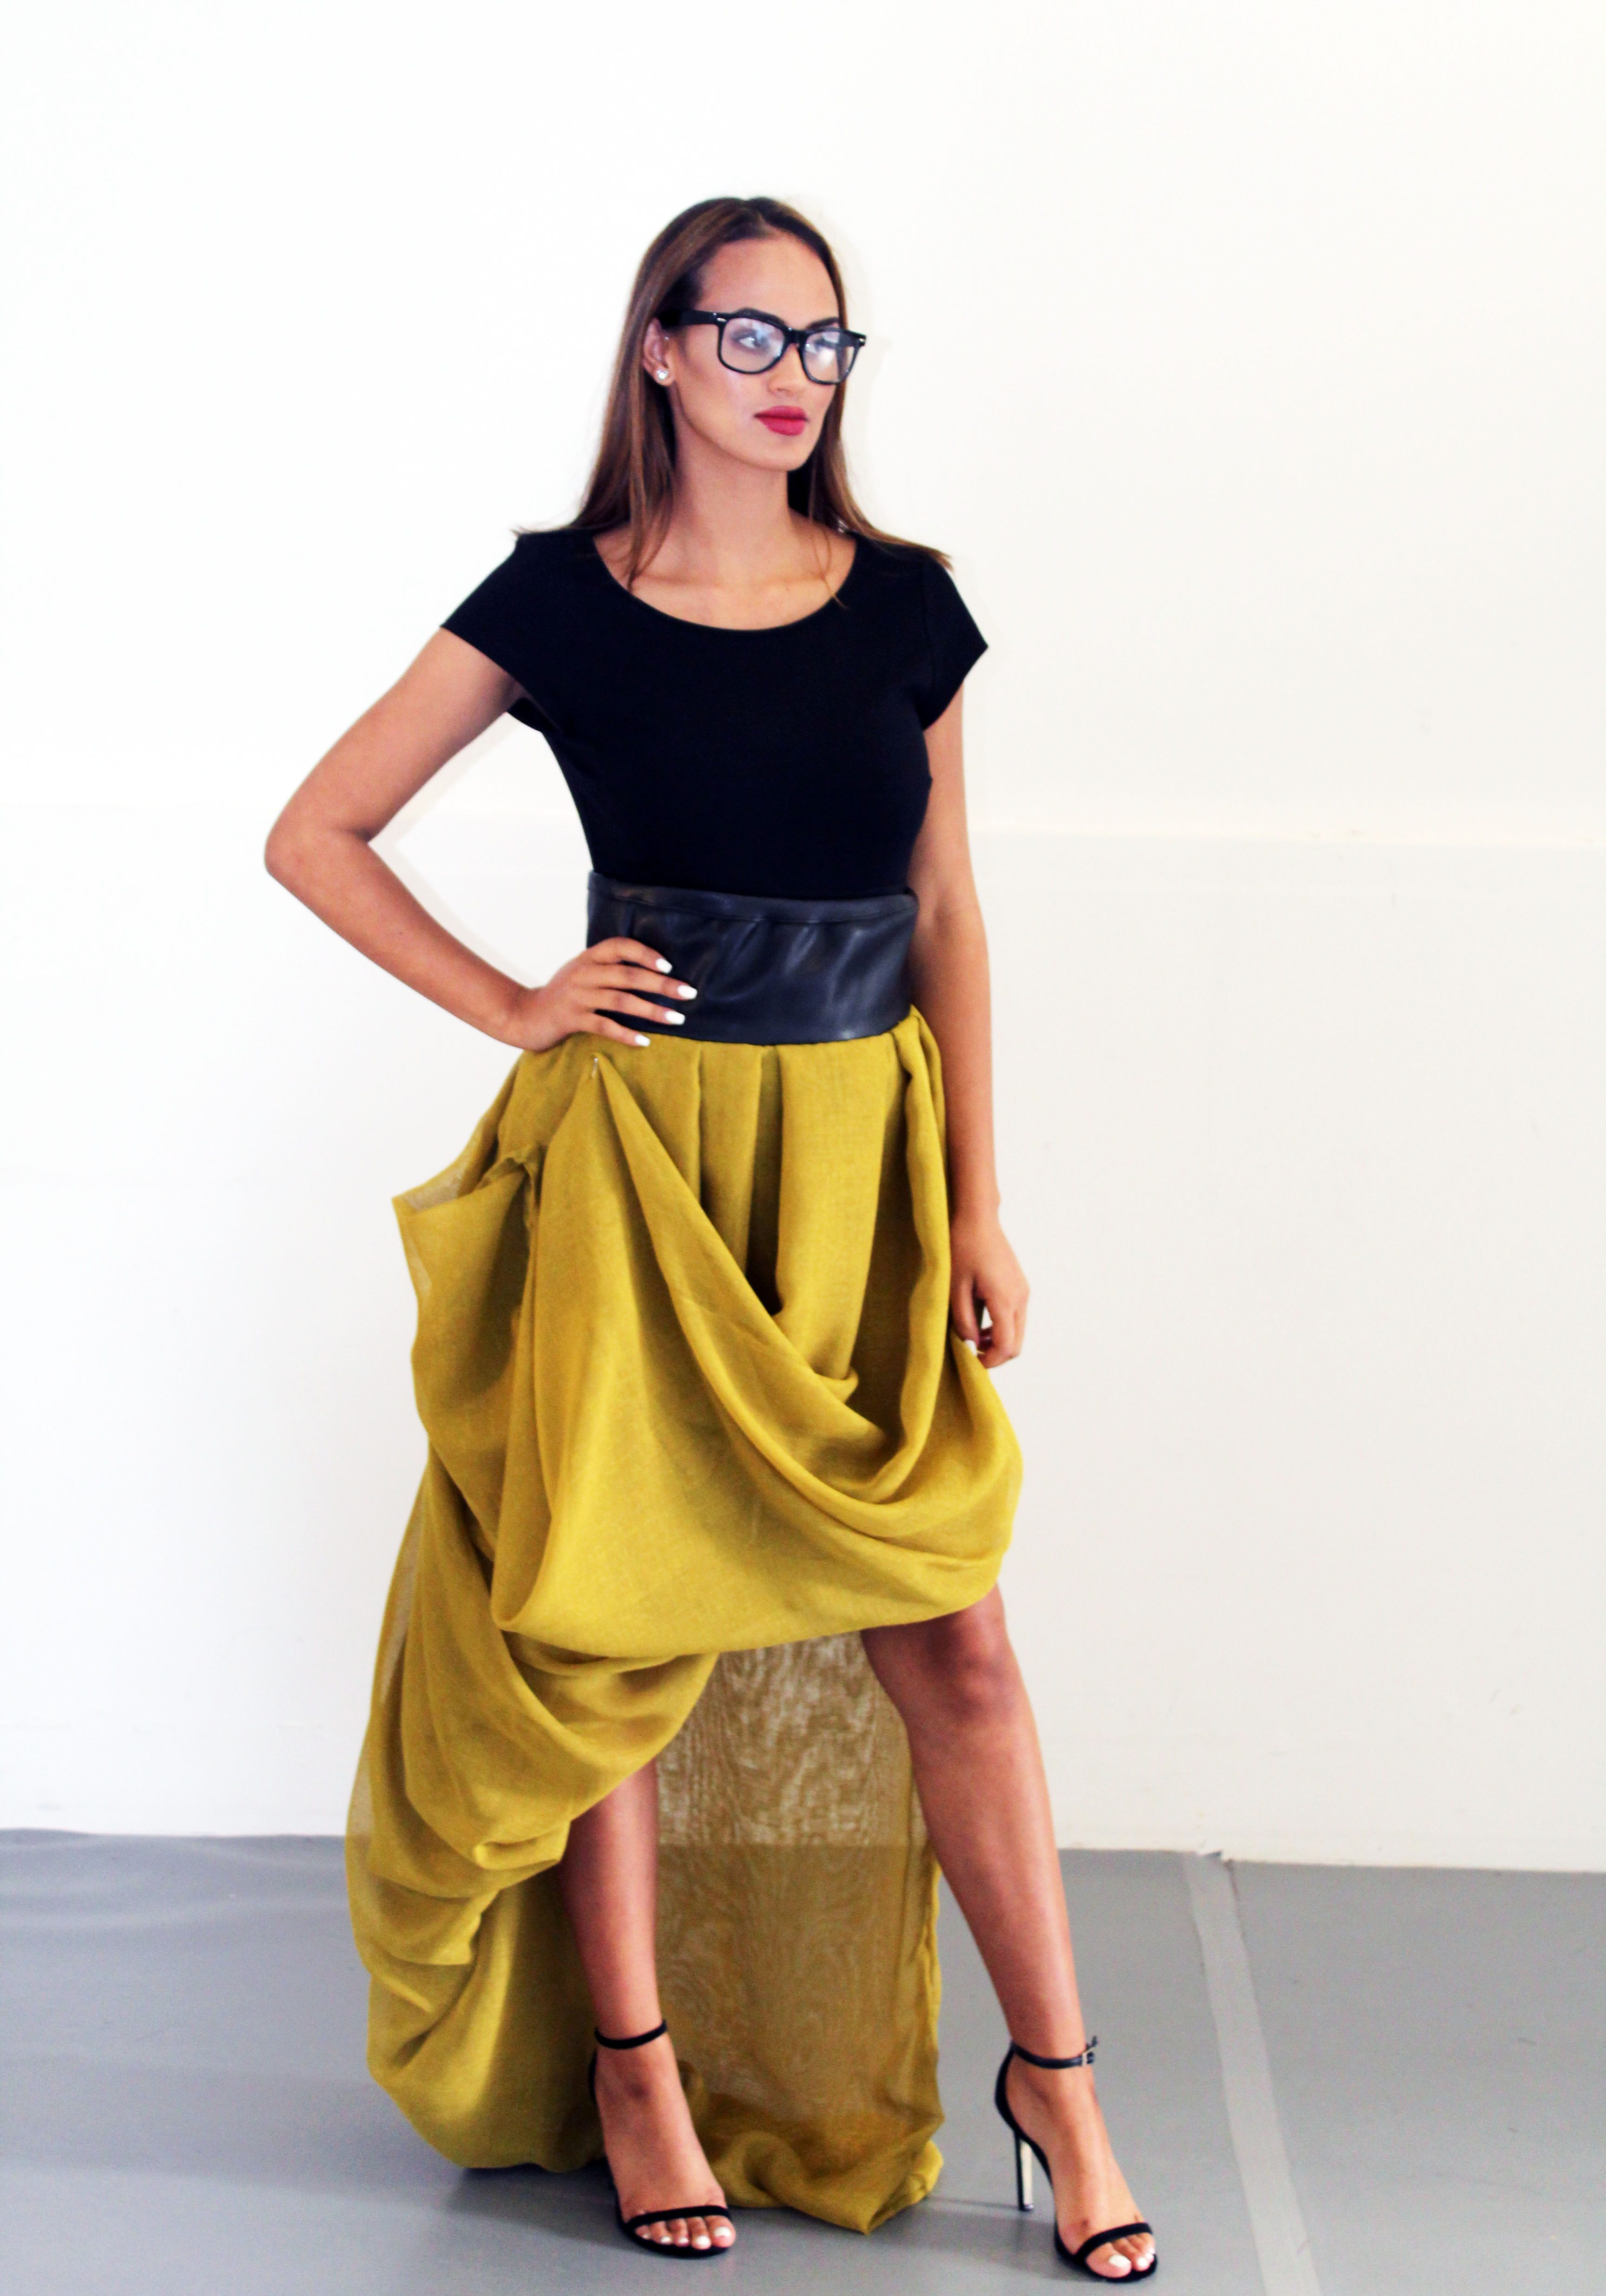 Olivia Skirt by Whats Your Skirt